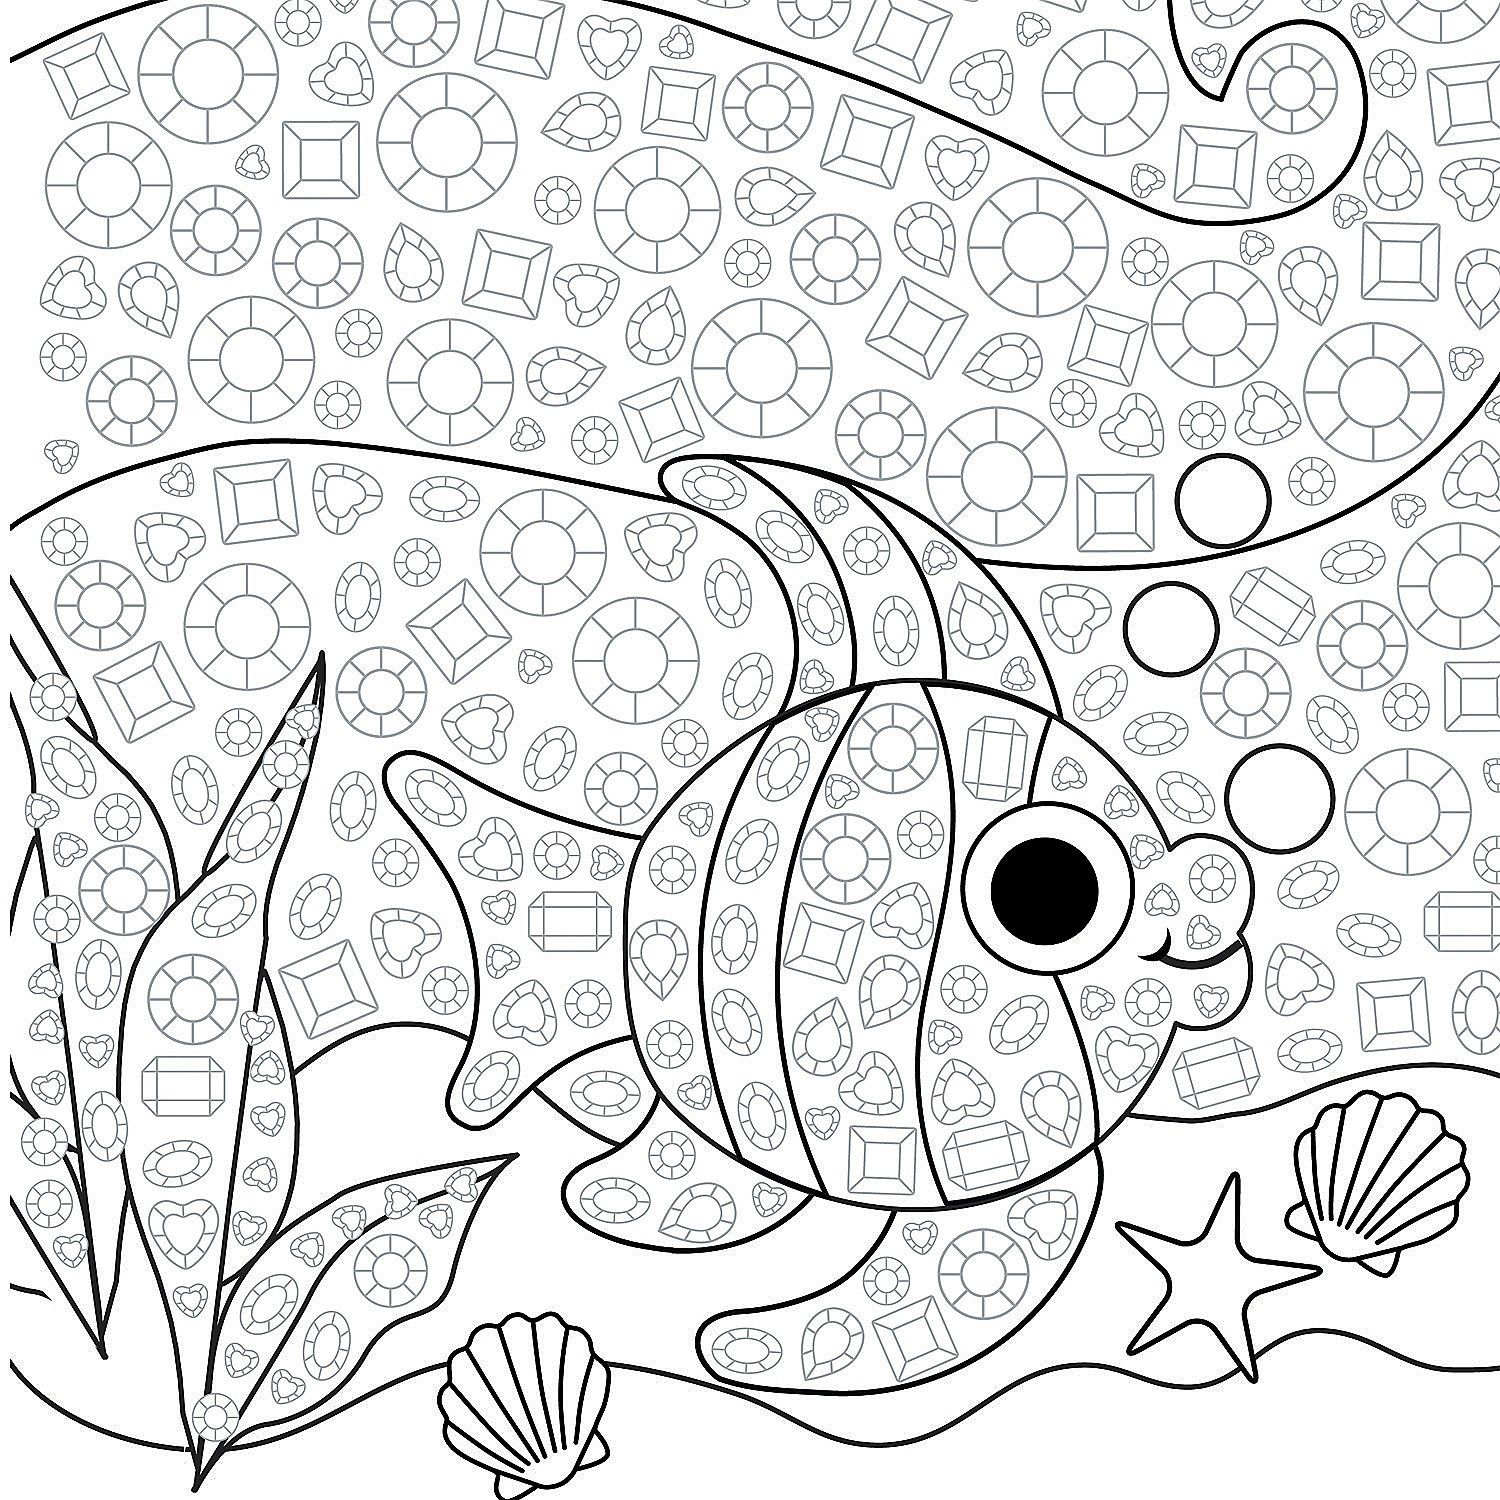 deep sea discovery fish mosaic template orientaltradingcom - Oriental Trading Coloring Pages